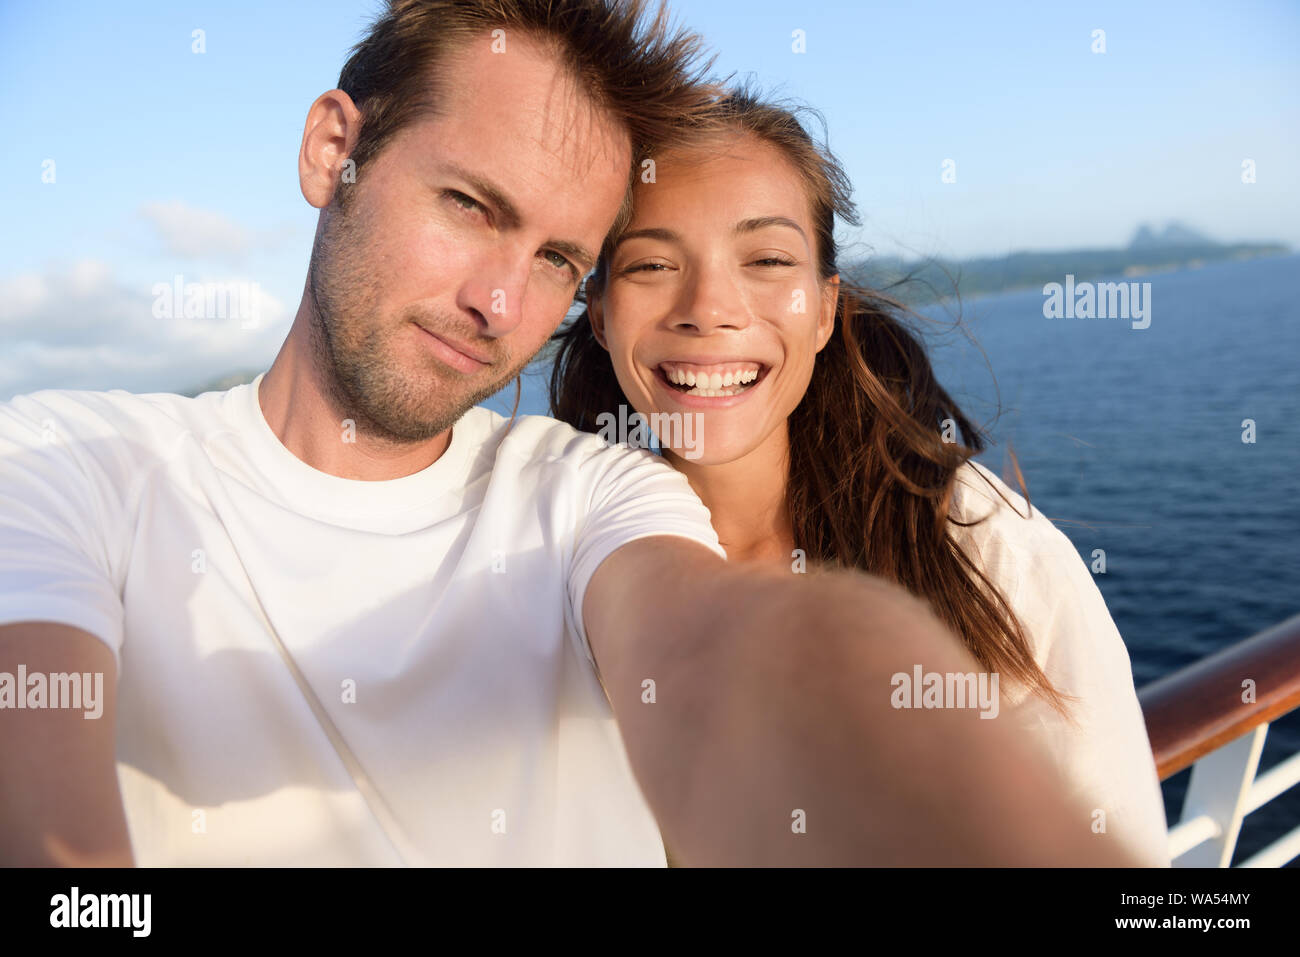 Selfie couple taking holiday self-portrait picture of themselves. Happy multiracial friends having fun together on cruise vacation in Caribbean destination taking smartphone photos as summer memories. Stock Photo